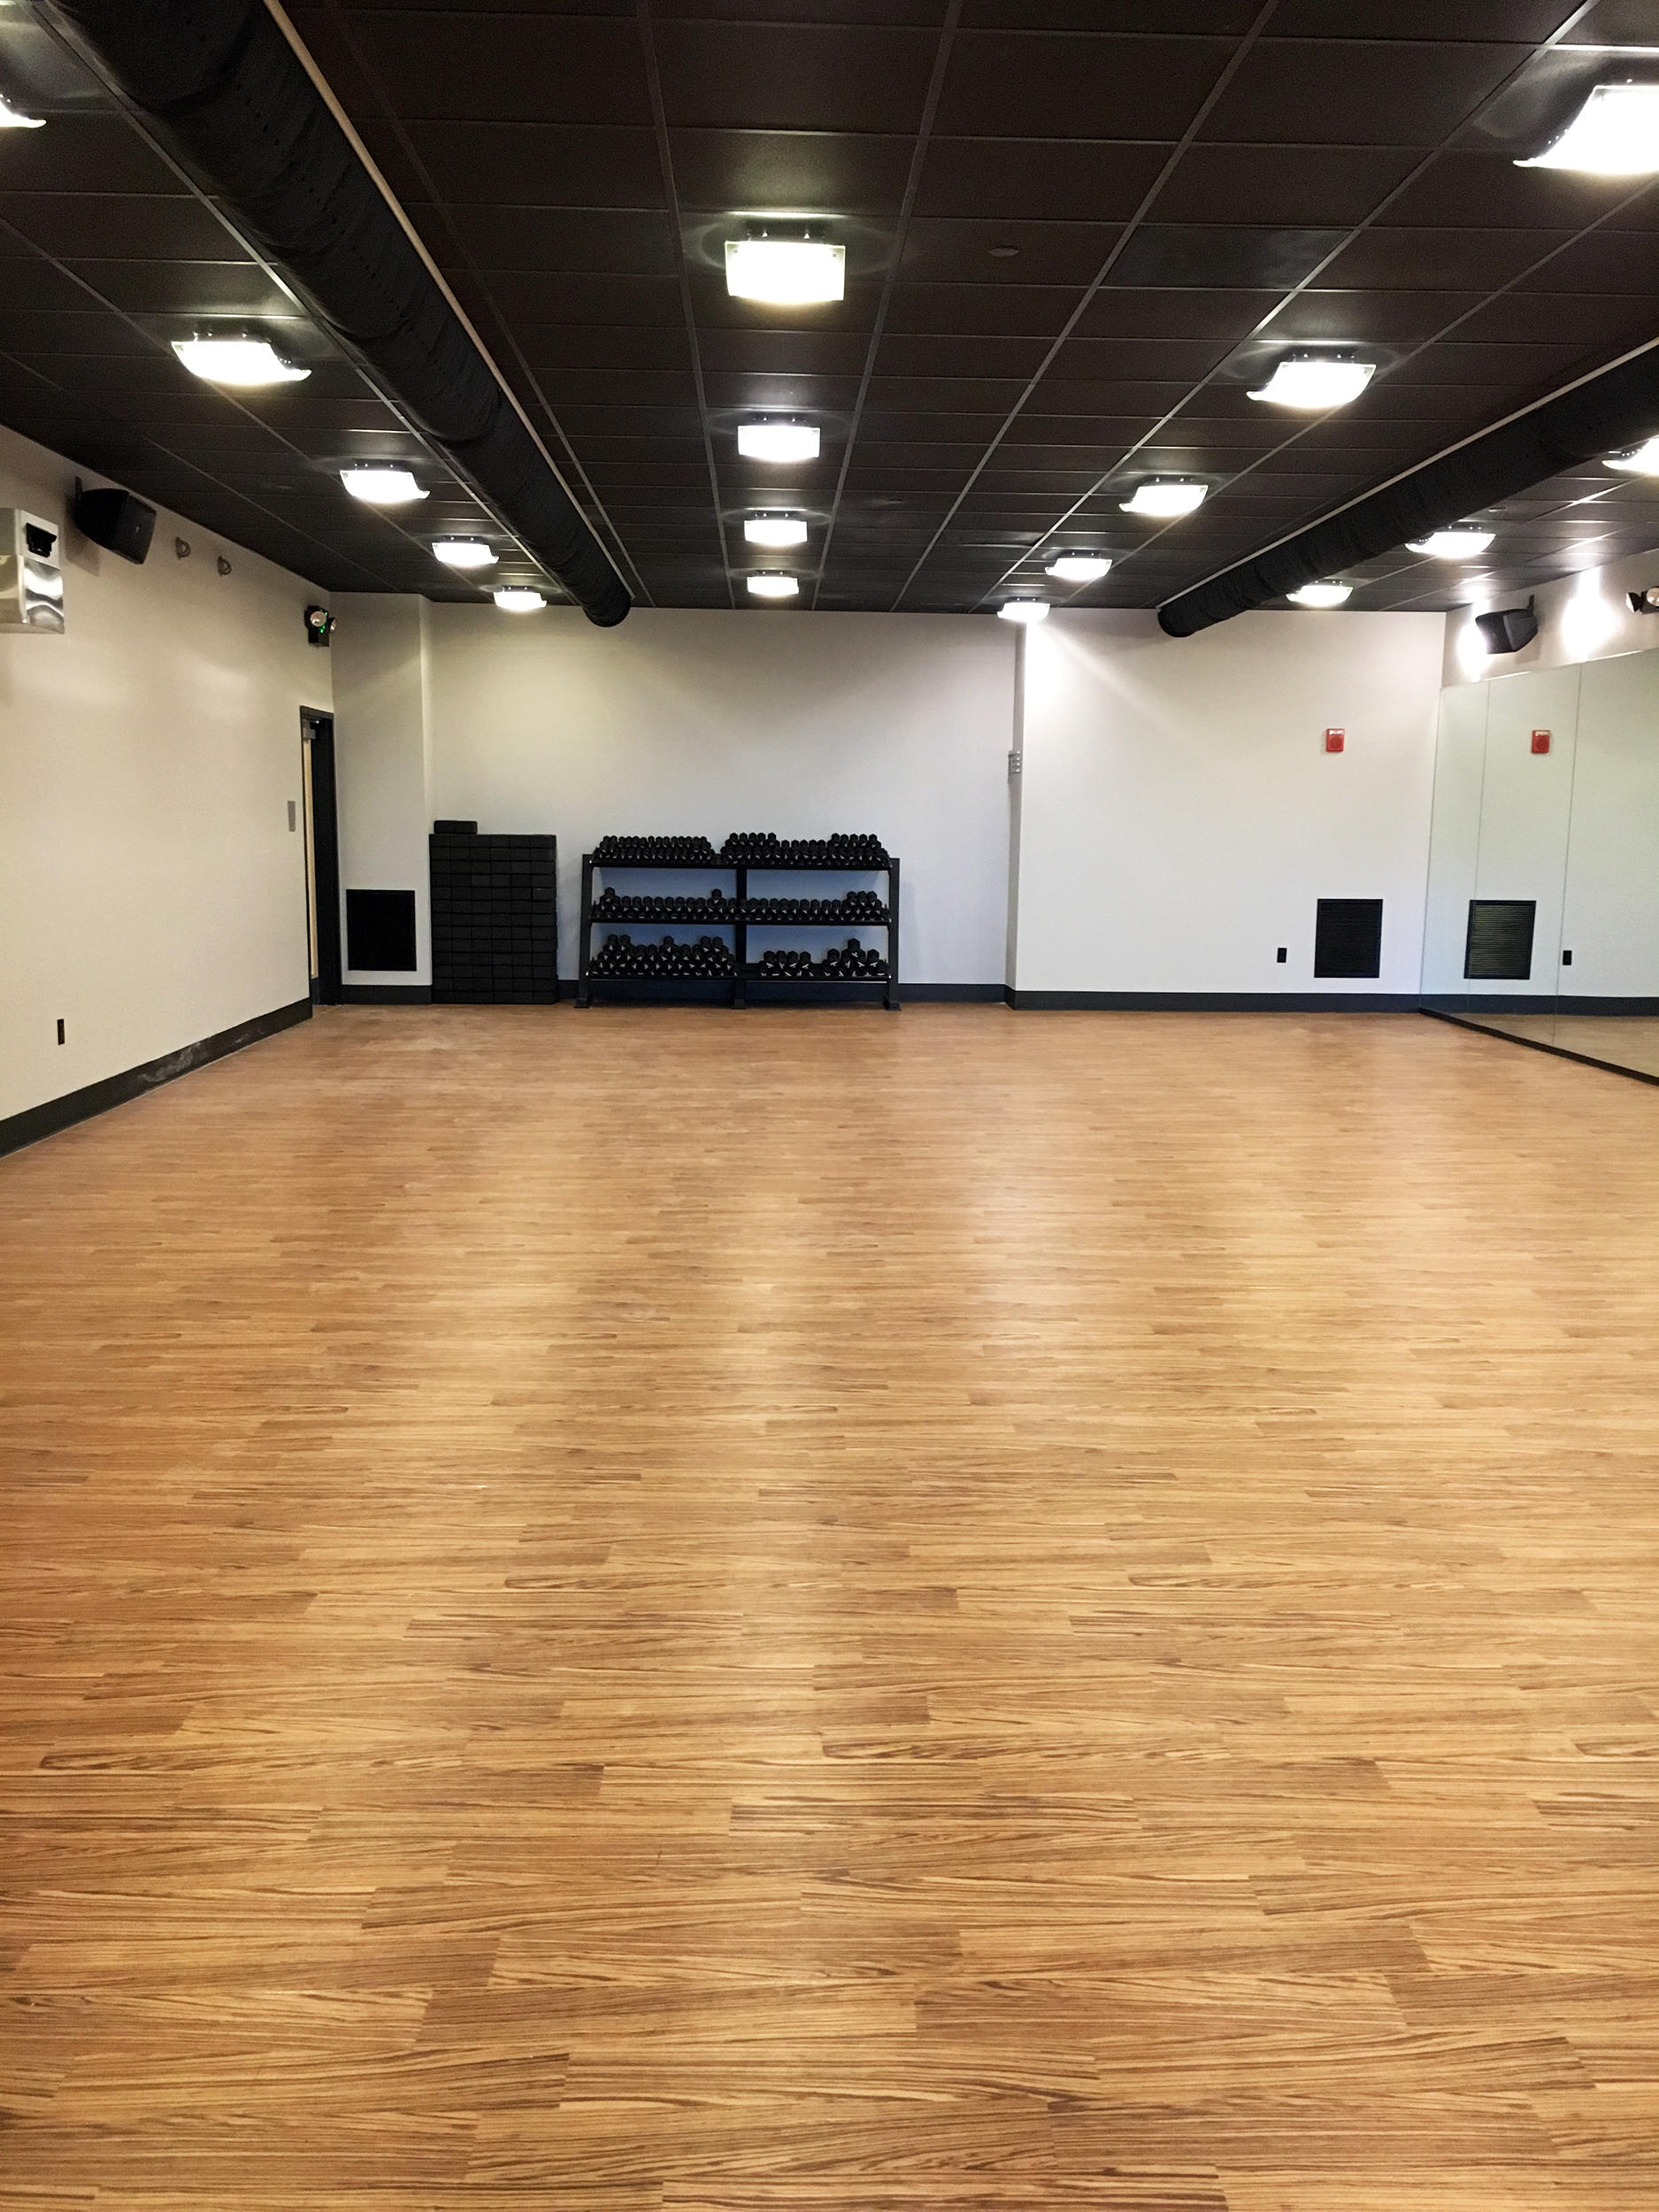 X also Erin Hall additionally D Ead Feb D C E B furthermore Cpy University District Front Desk as well Ykn. on corepower sculpt yoga teacher training